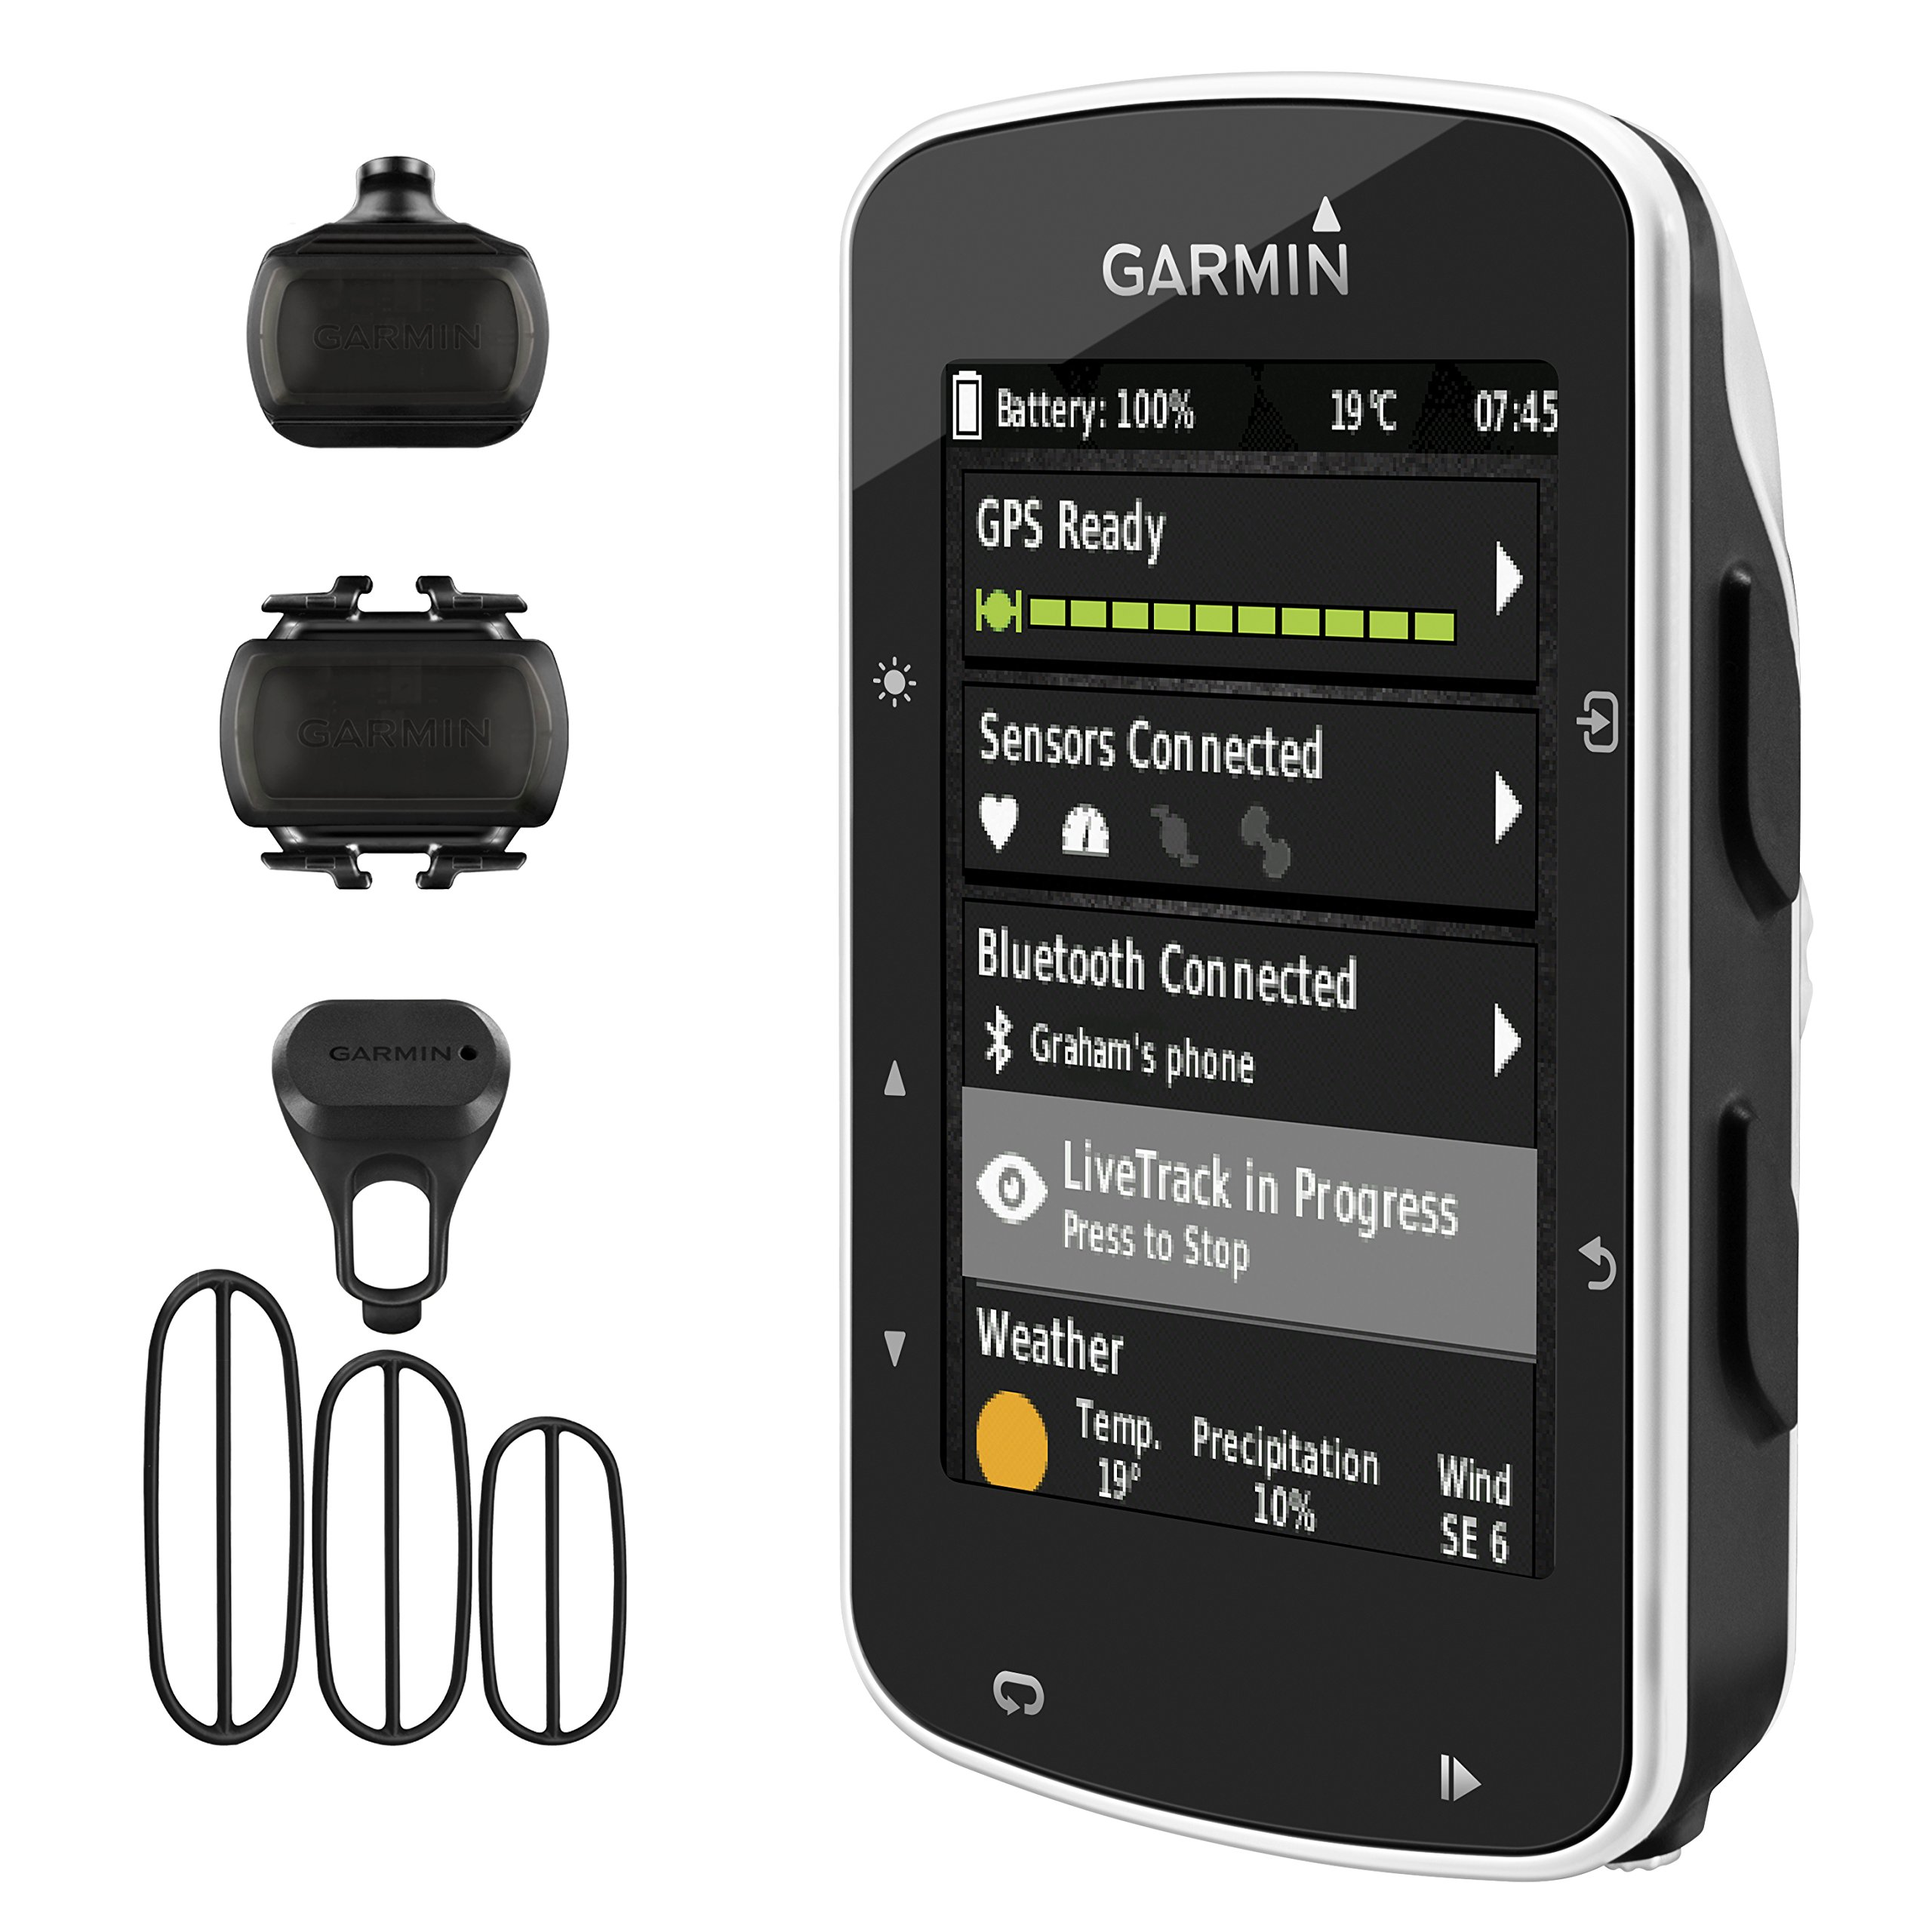 Garmin Edge 520 GPS Cycling Computer 010-01368-00 and Garmin Bike Speed Sensor and Cadence Sensor 010-12104-00 Bundle